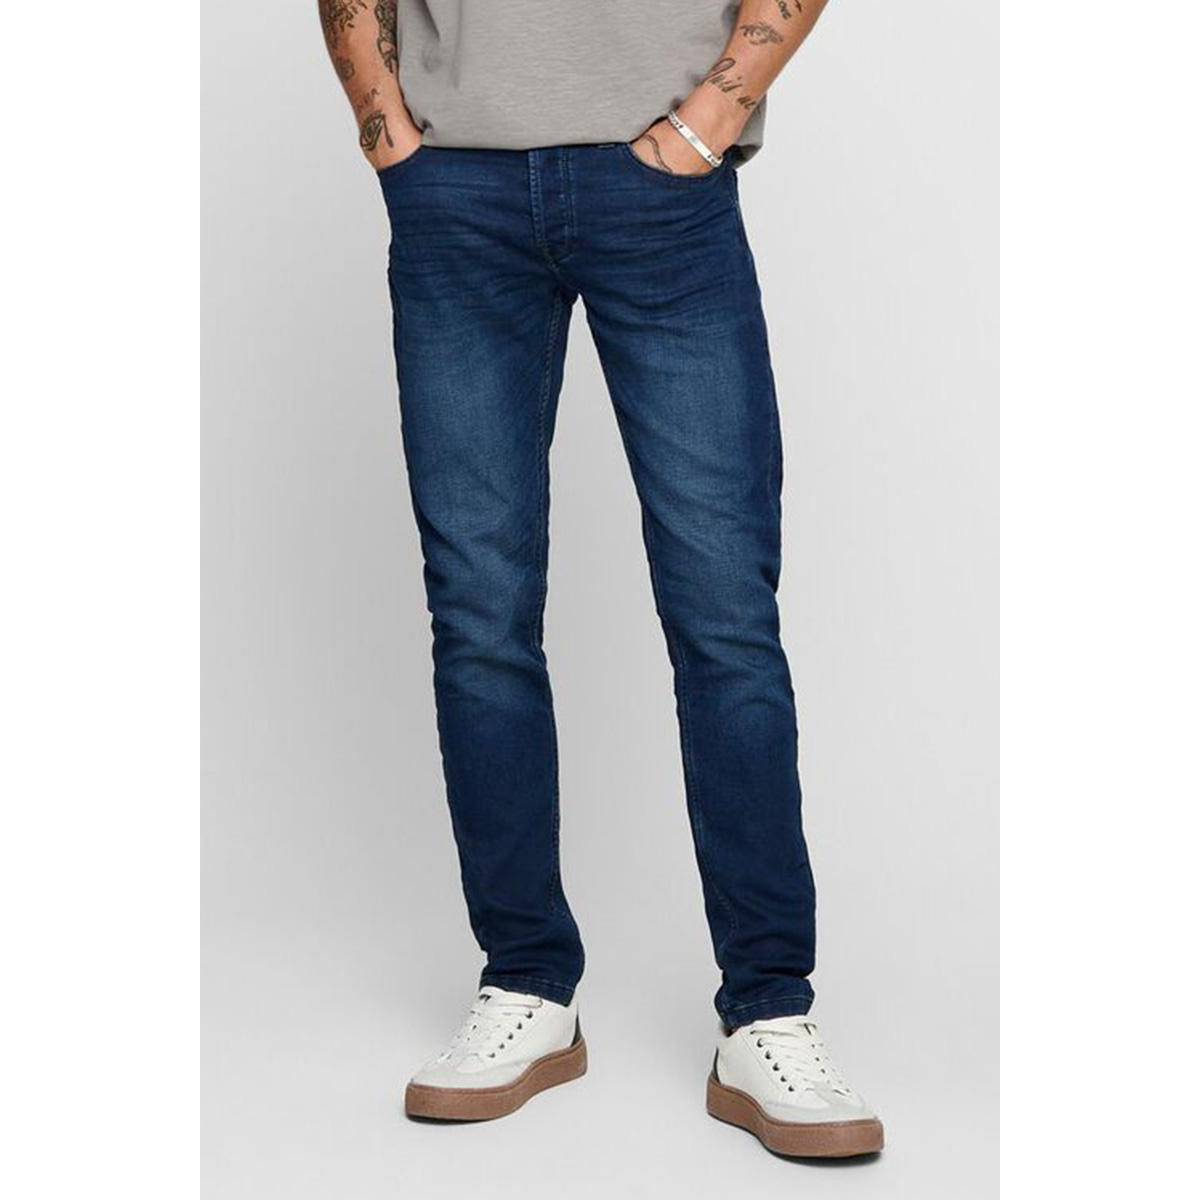 onsloom jog dk blue pk 0431 noos 22010431 only & sons jeans blue denim